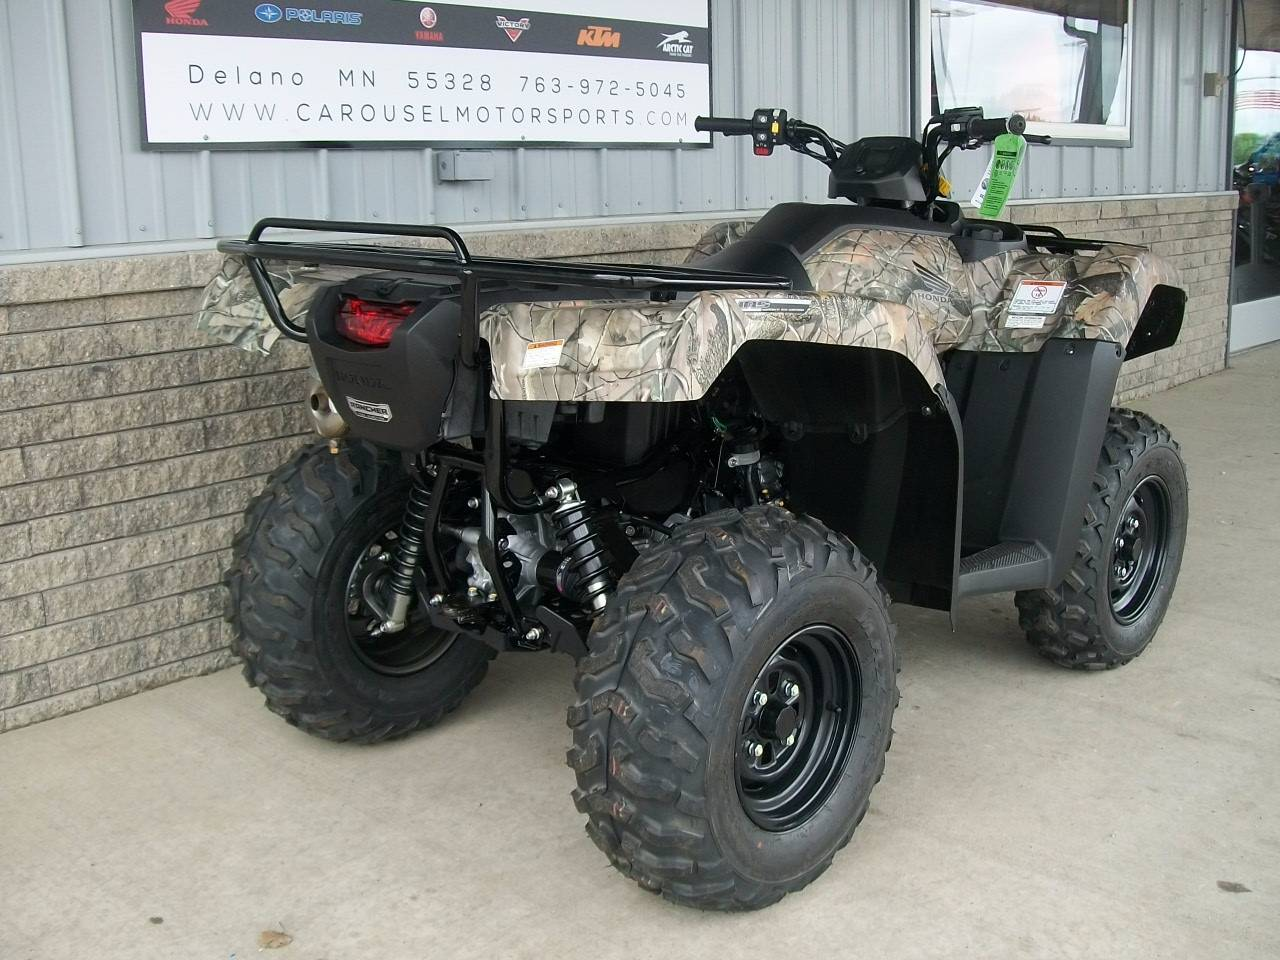 2017 Honda FourTrax Rancher 4x4 DCT IRS EPS in Delano, Minnesota